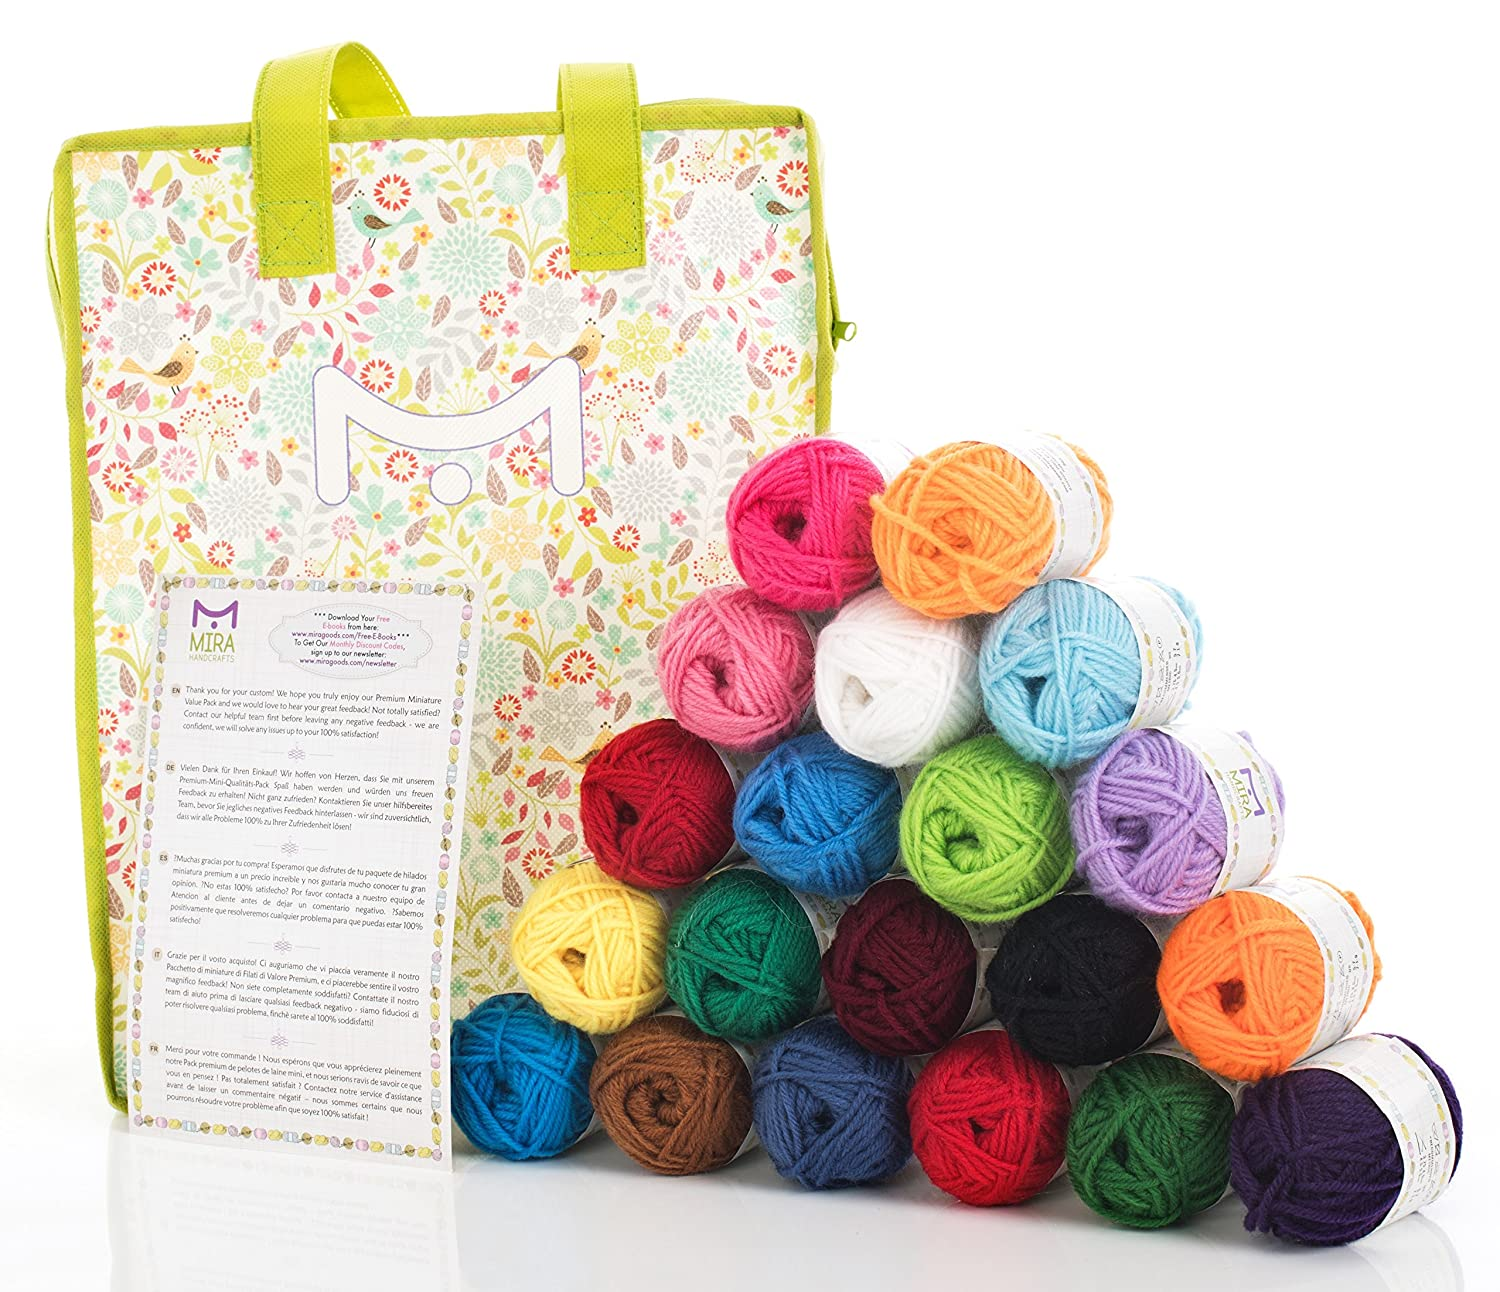 Mira Handcrafts 20 Acrylic Yarn Balls – Total of 800m Knitting and Crochet Yarn – Multicolour Yarn in Reusable Storage Yarn Bag and 7 Ebooks with Yarn Patterns Miragoods